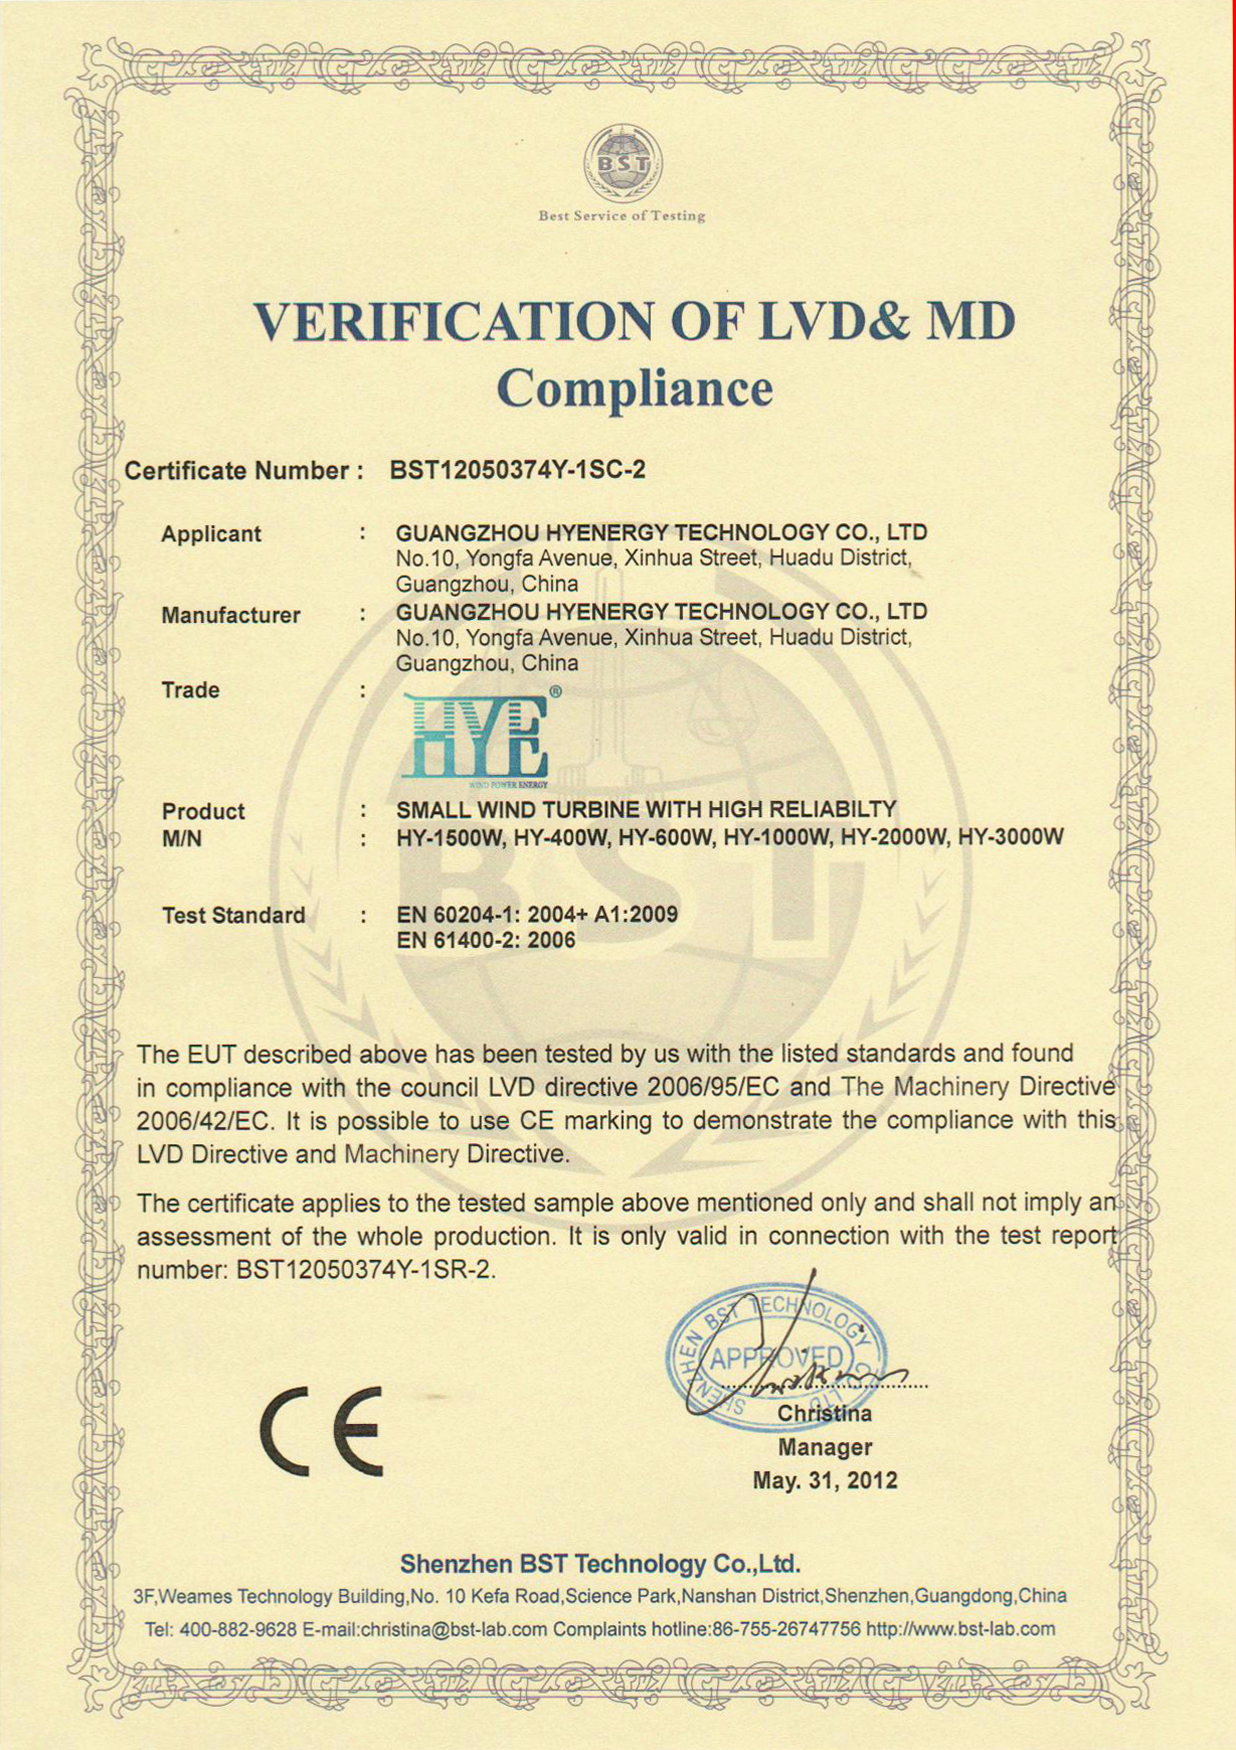 Guangzhou Hy Energy Technology Limited Corp